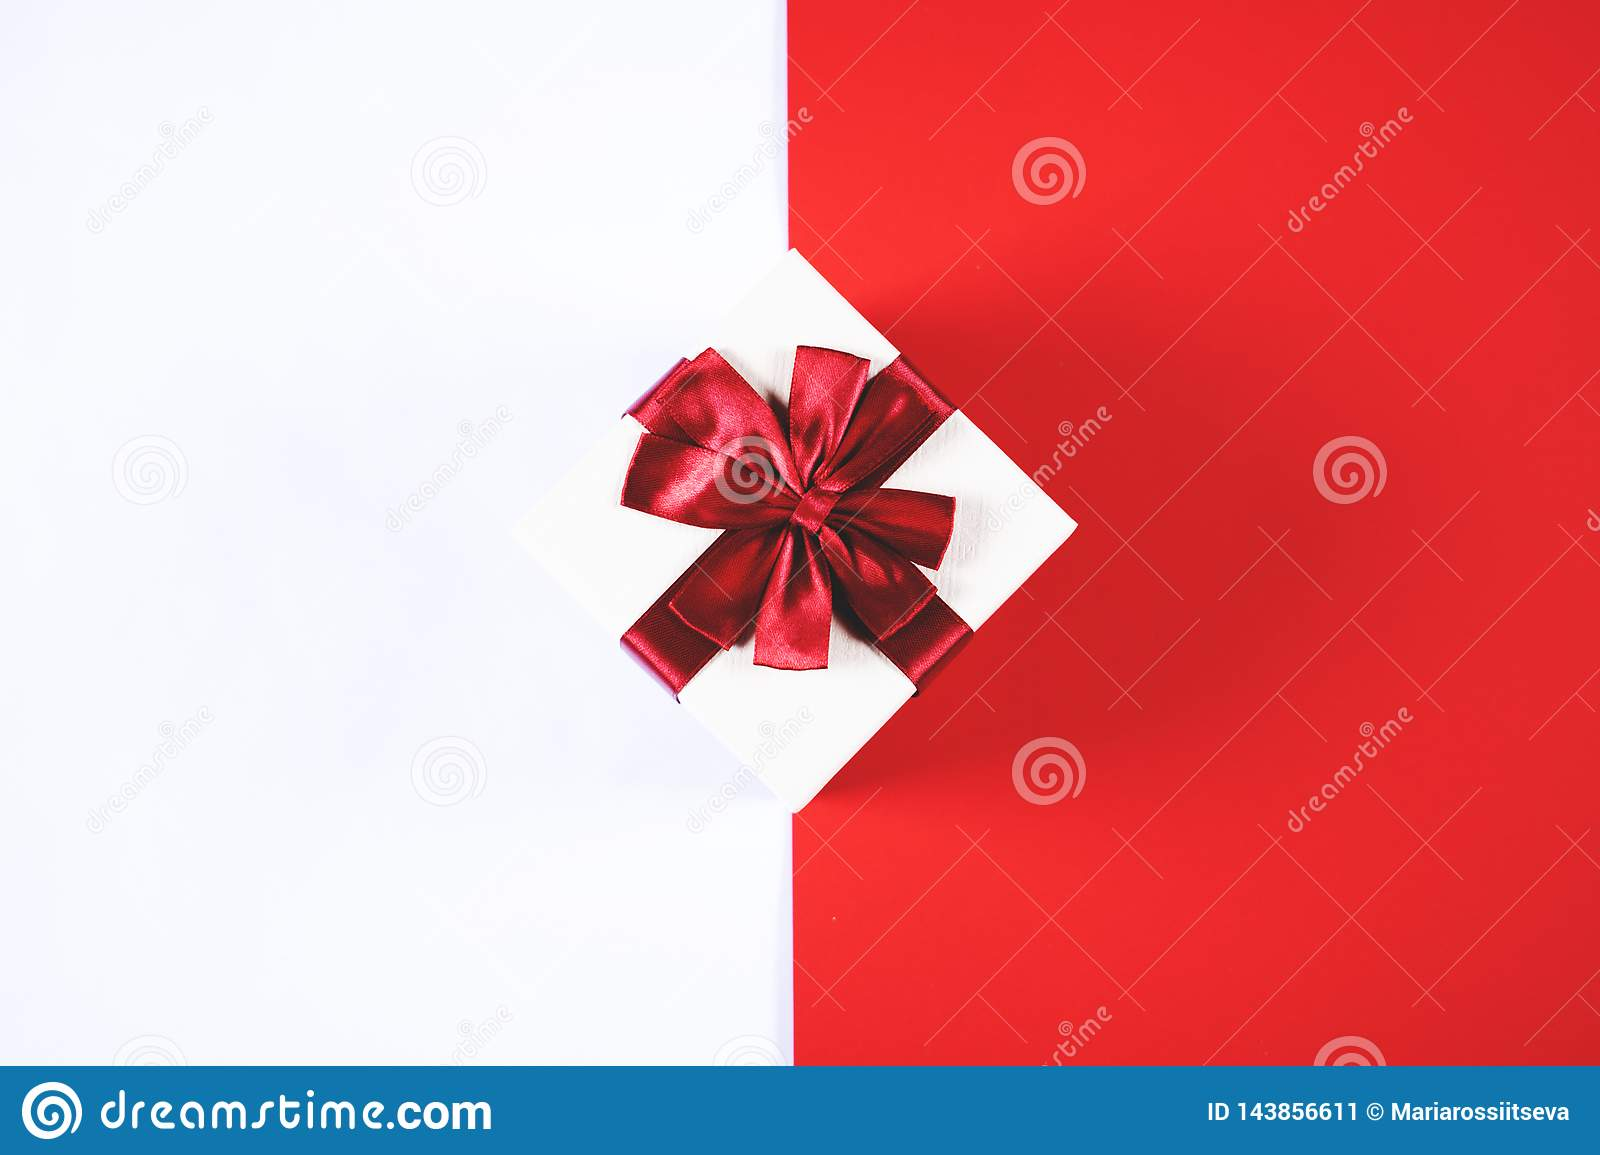 Beautiful present box on red and white background